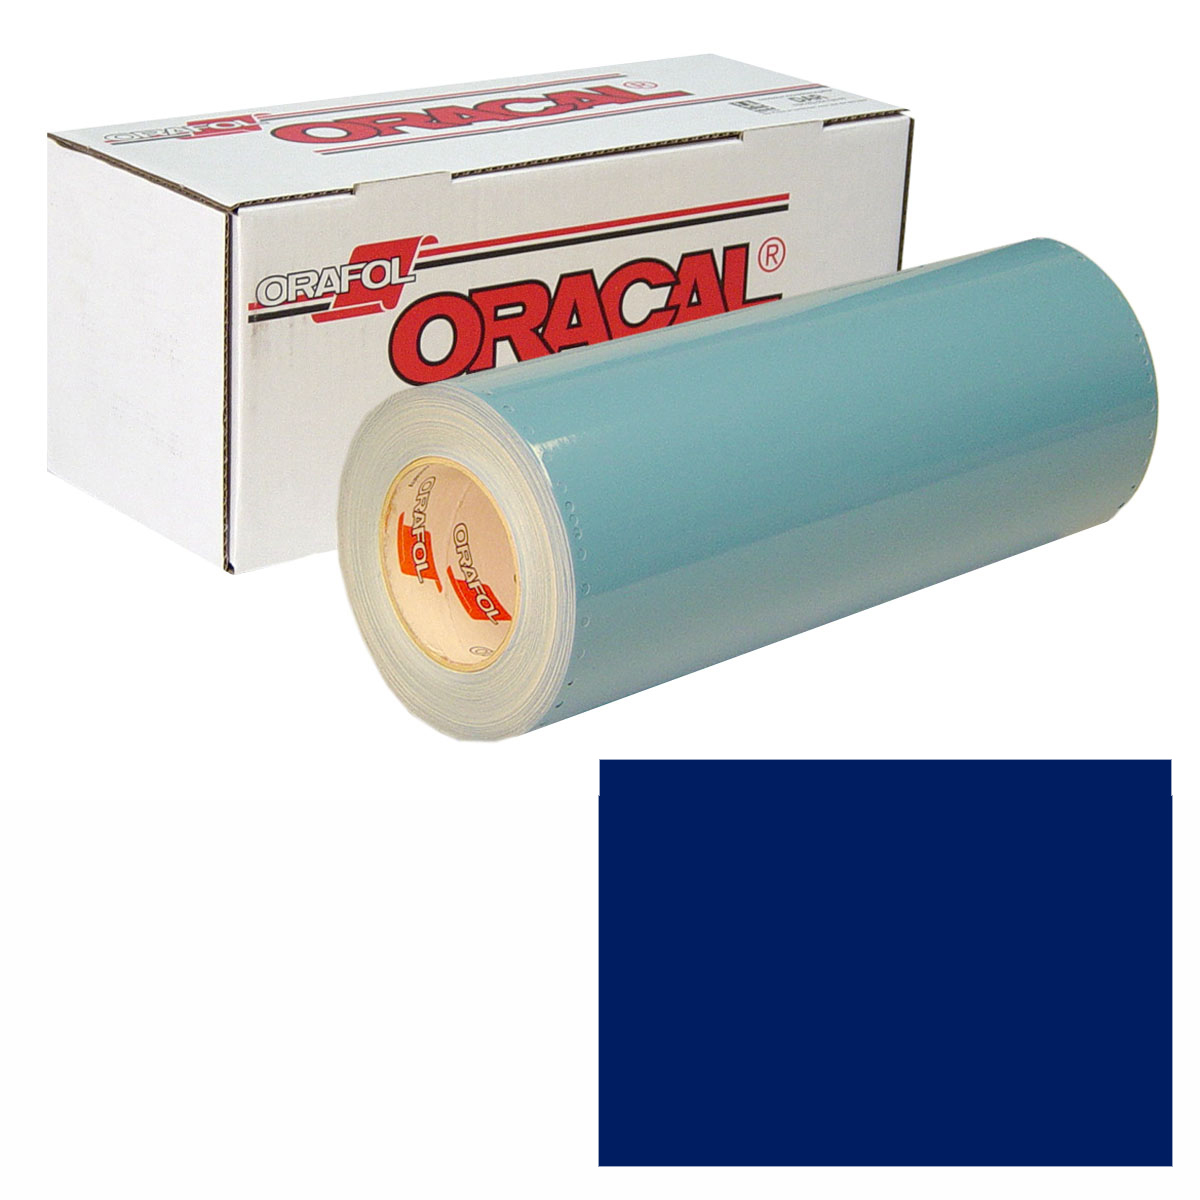 ORACAL 751 30in X 10yd 537 Deep Blue